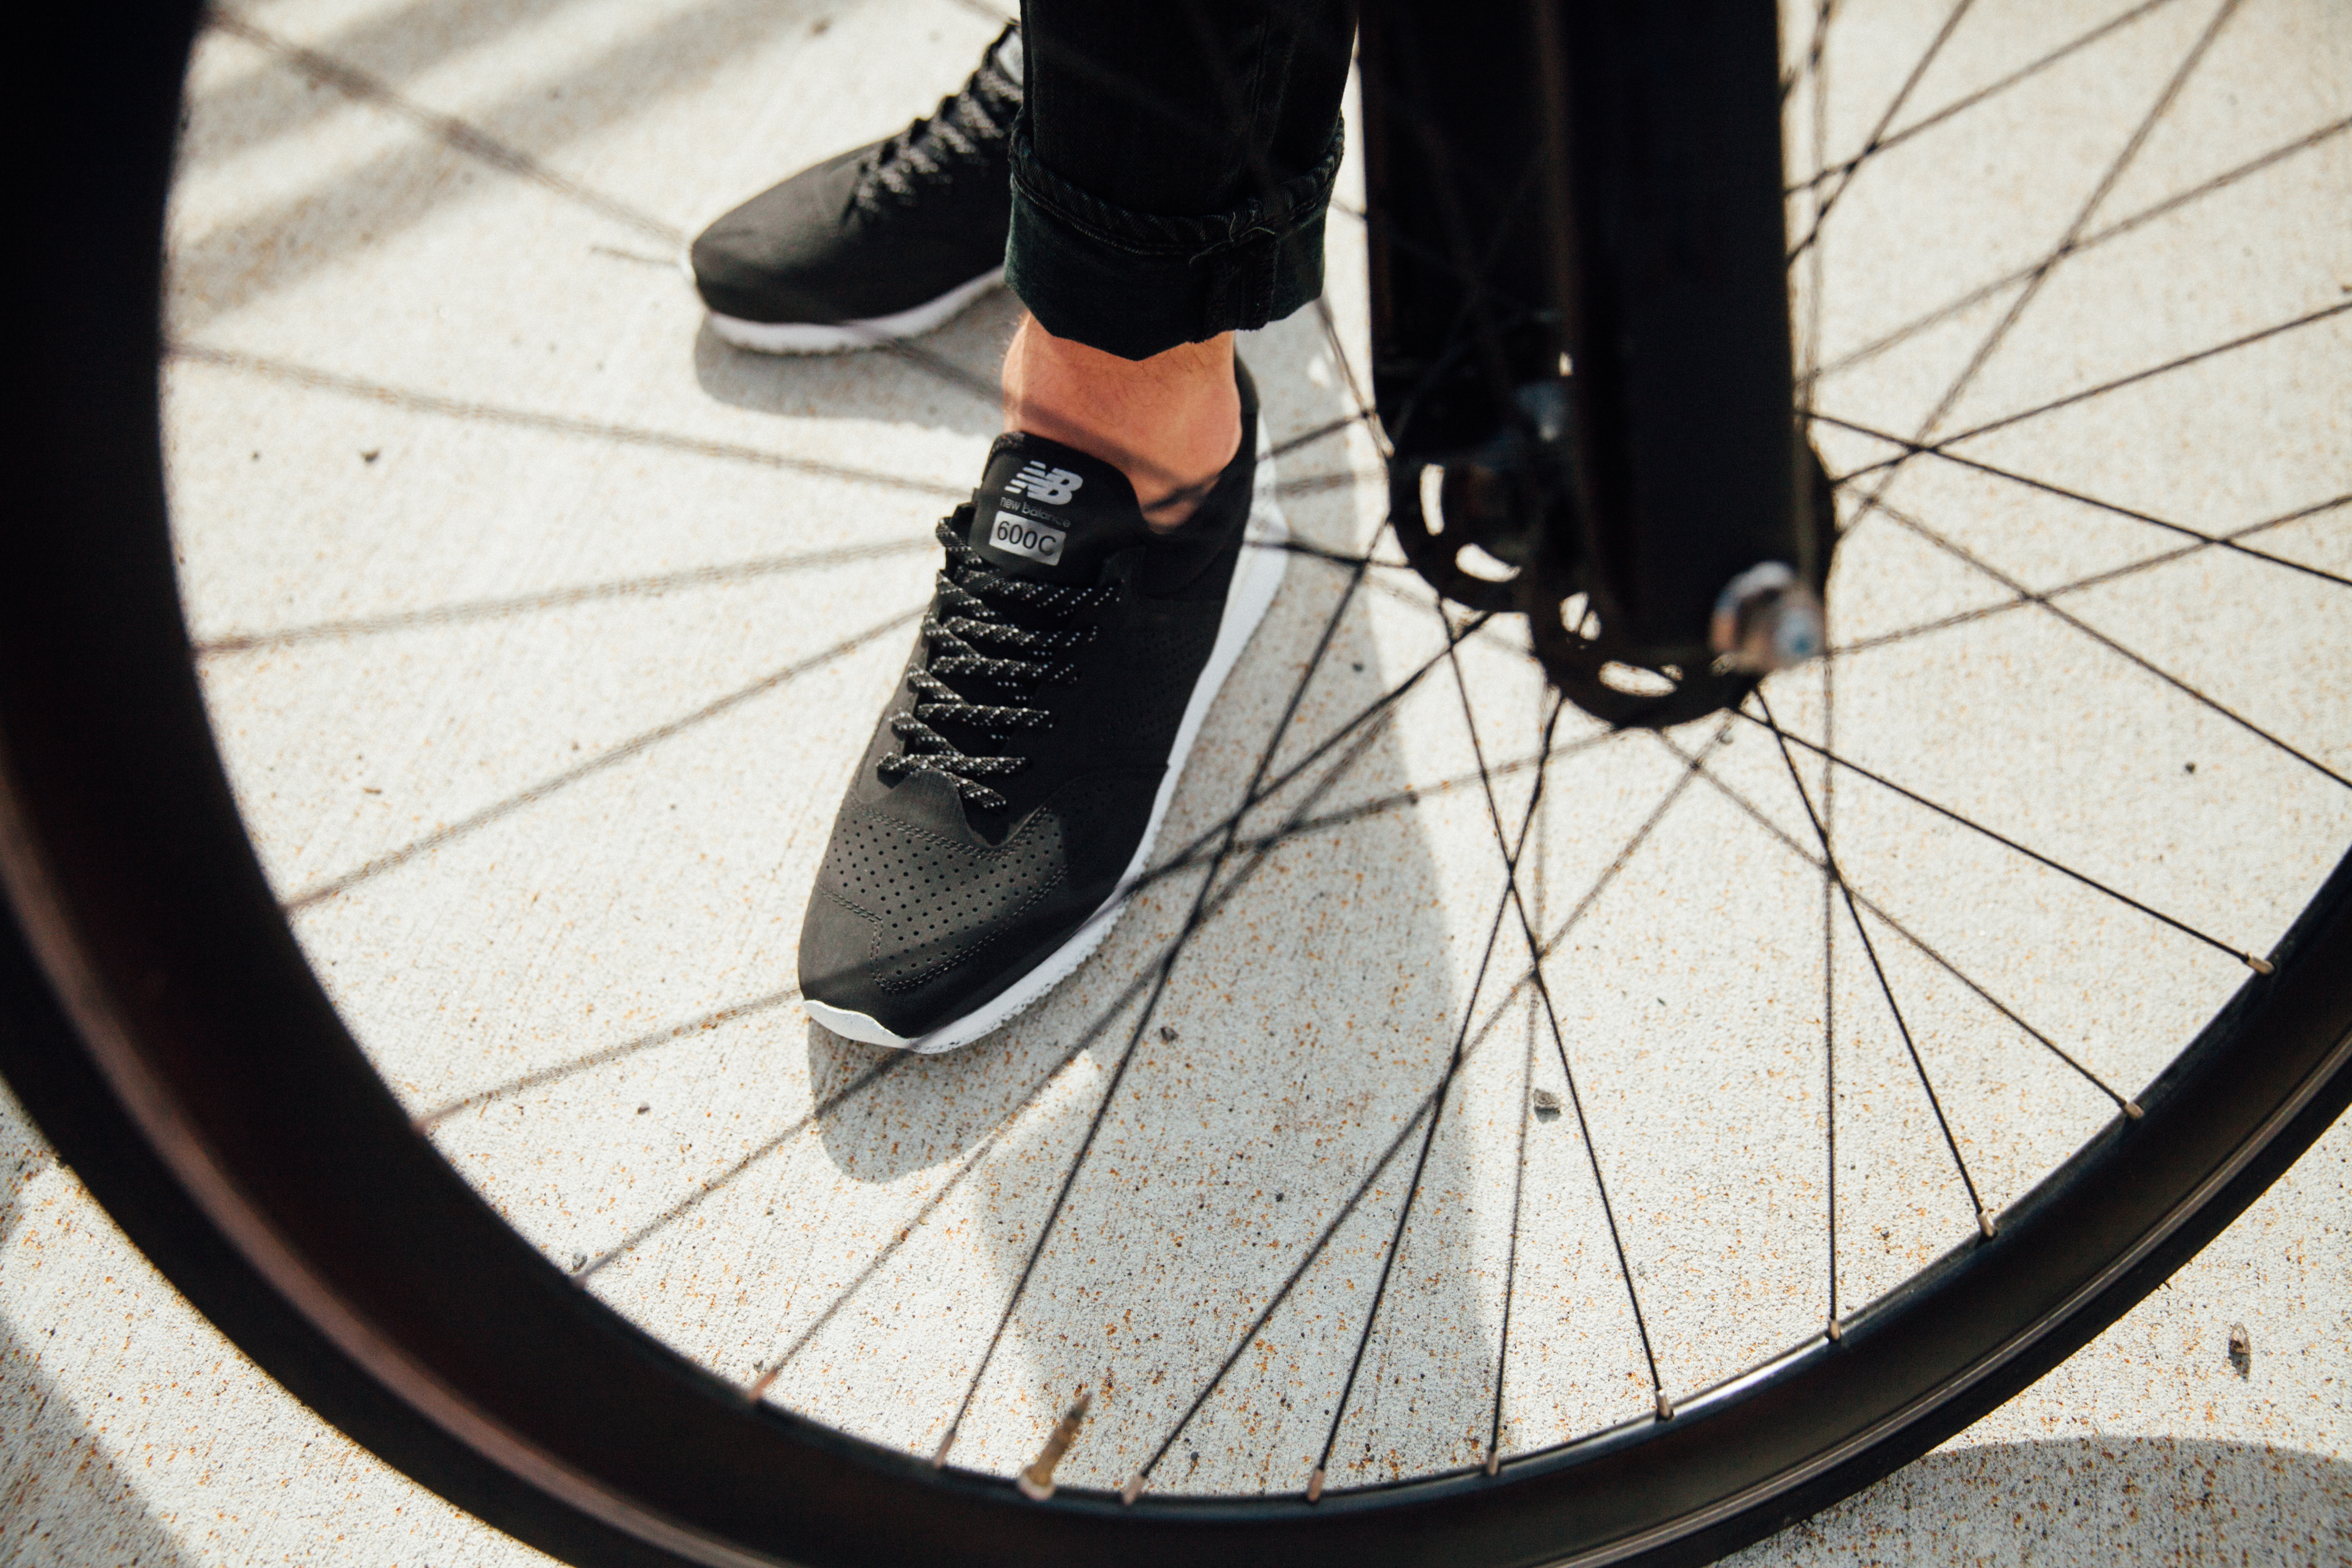 The Stylish Cycling Shoe That's Even